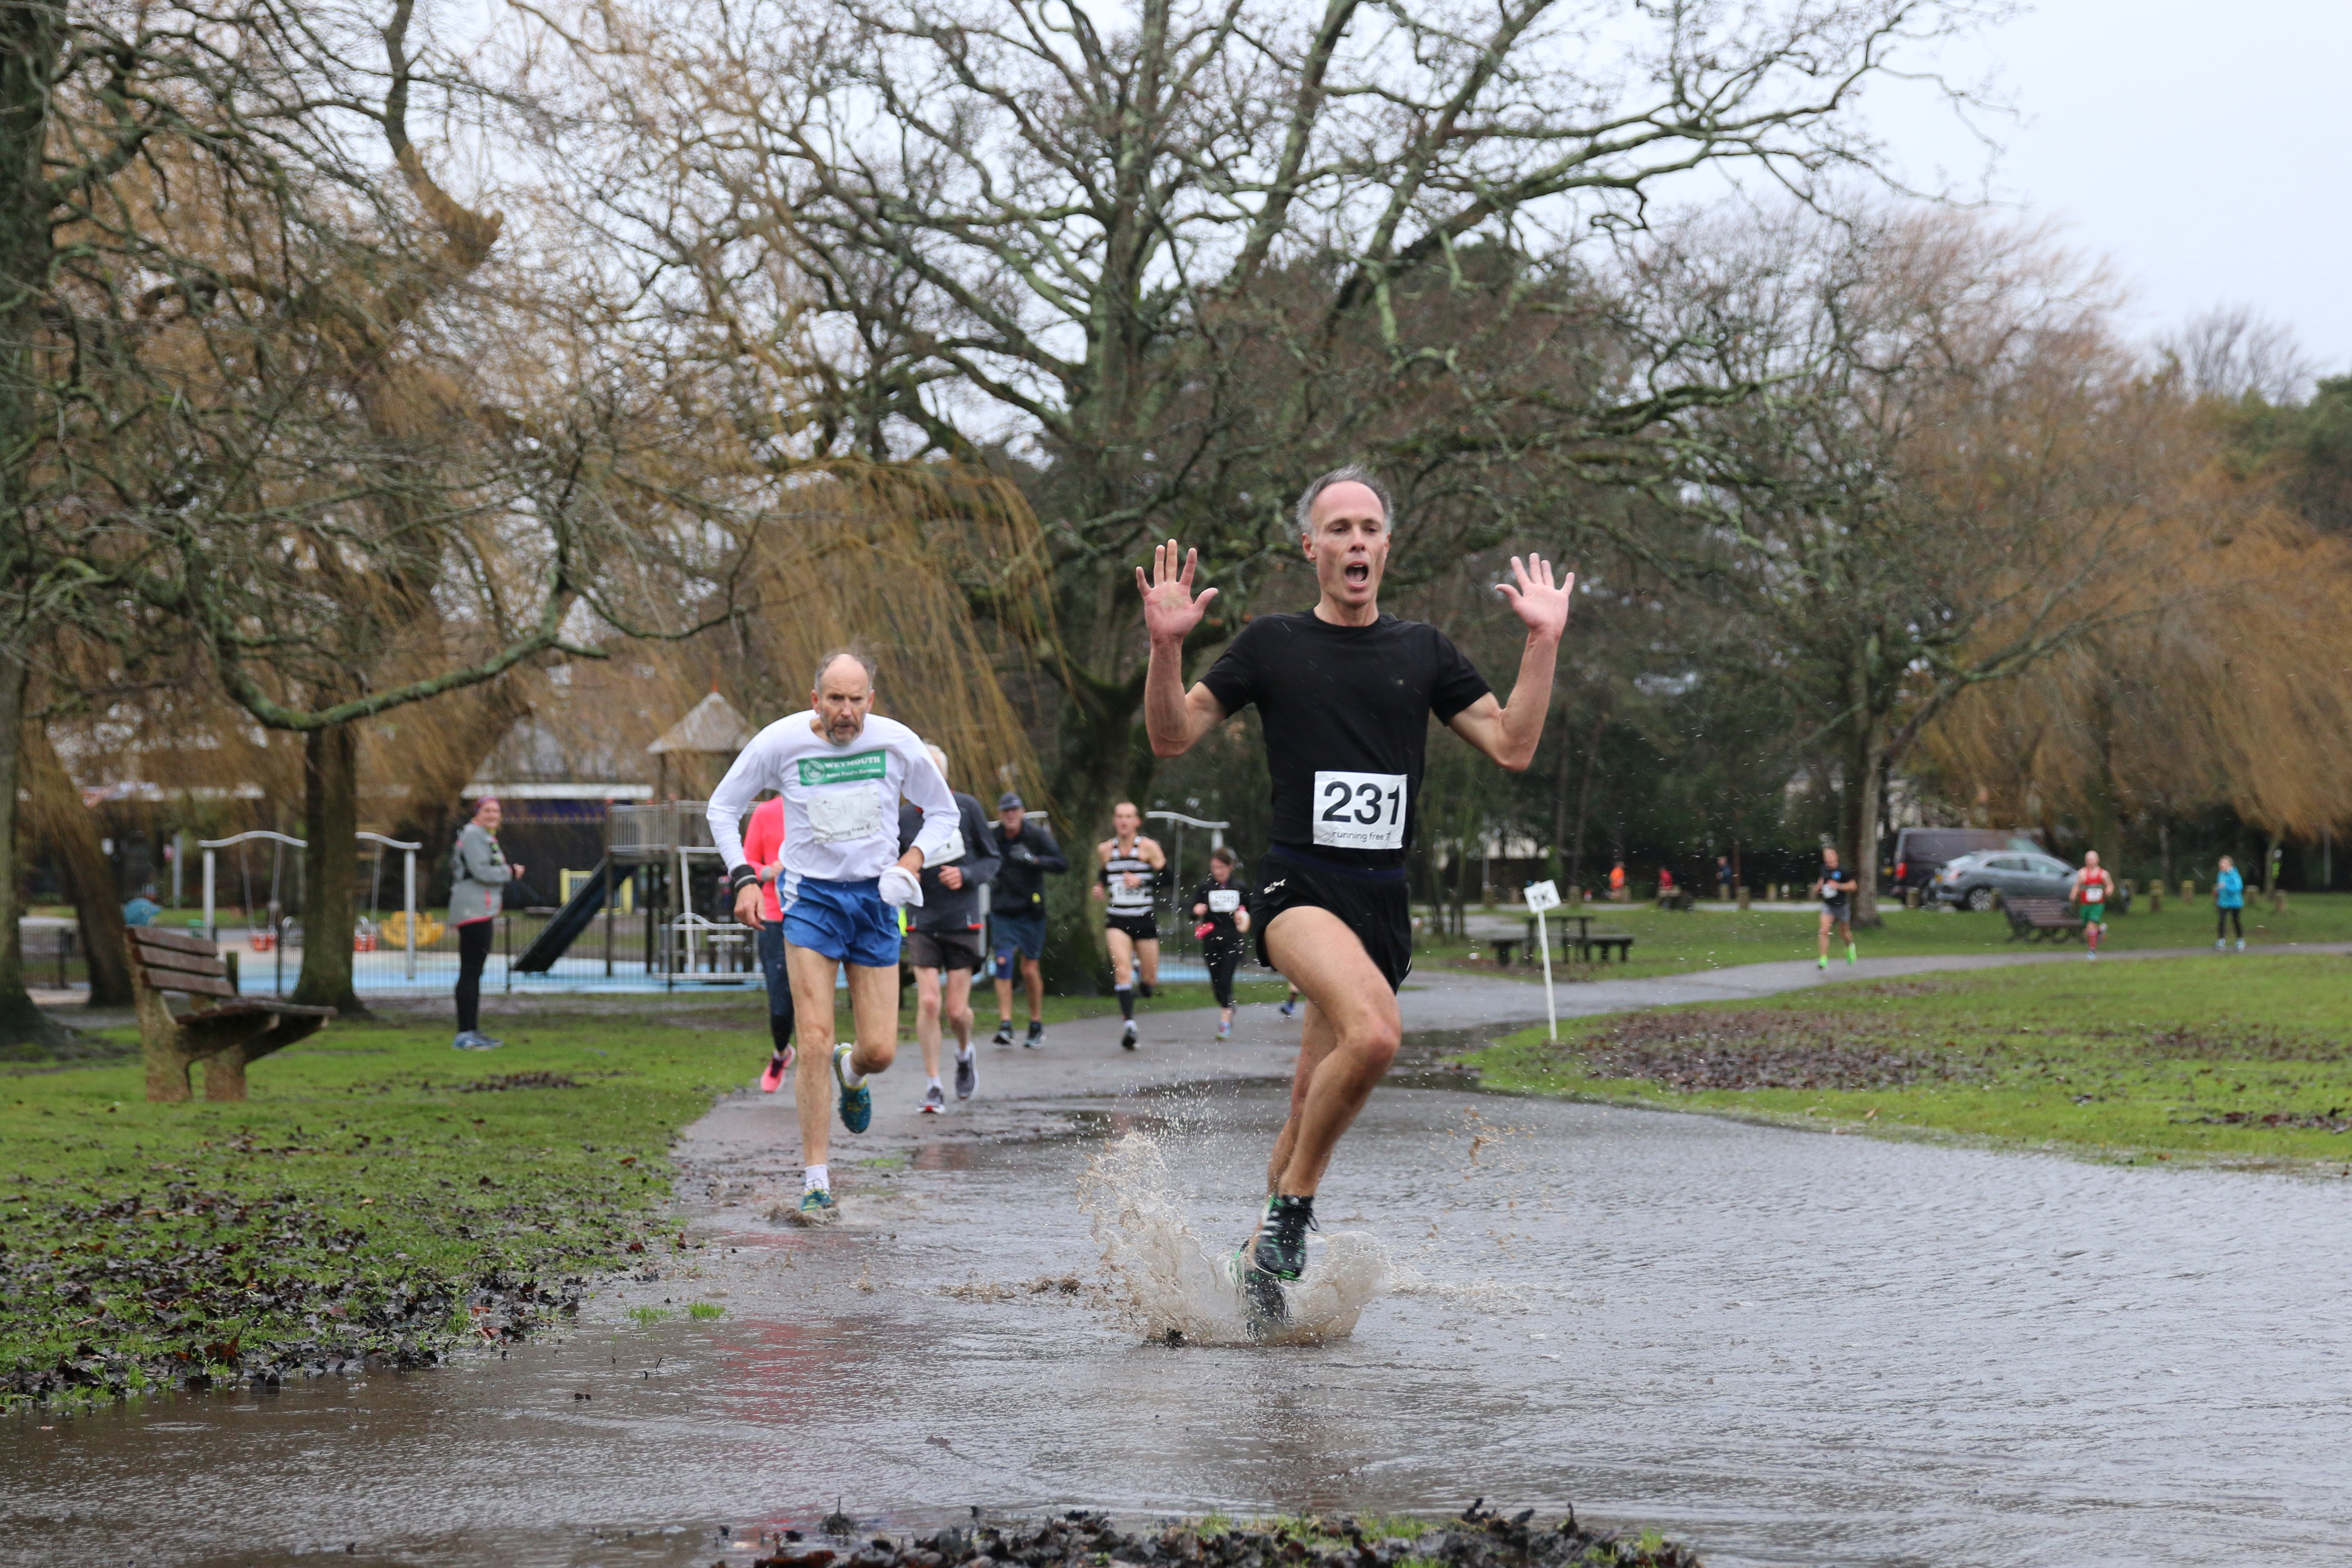 Andrew Ridley splashes through the water at Round the Lakes